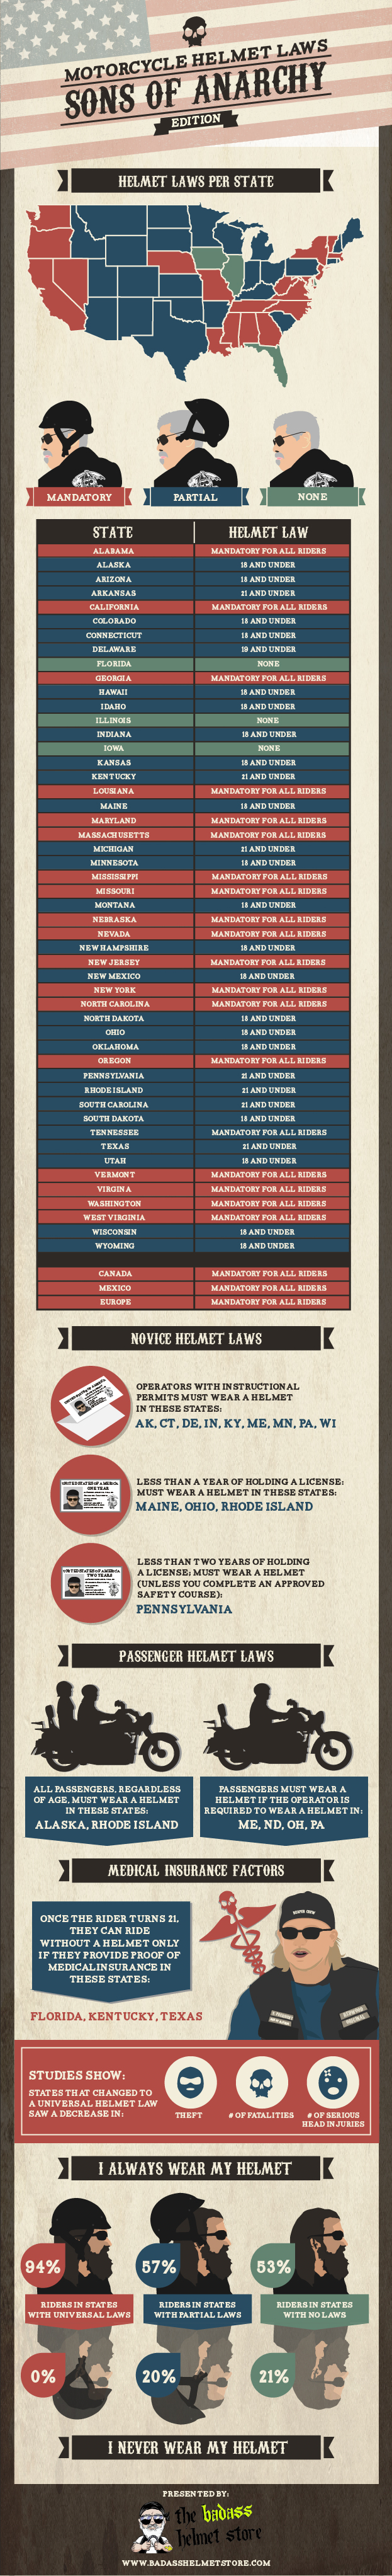 motorcycle helmet laws in america History of motorcycle helmet law: the motorcycle helmets laws in united states has gone through several changes throughout the years in 1967, in order to increase the helmet use, the federal government required the state government to enact helmet use laws to qualify for certain federal safety program and highway construction.